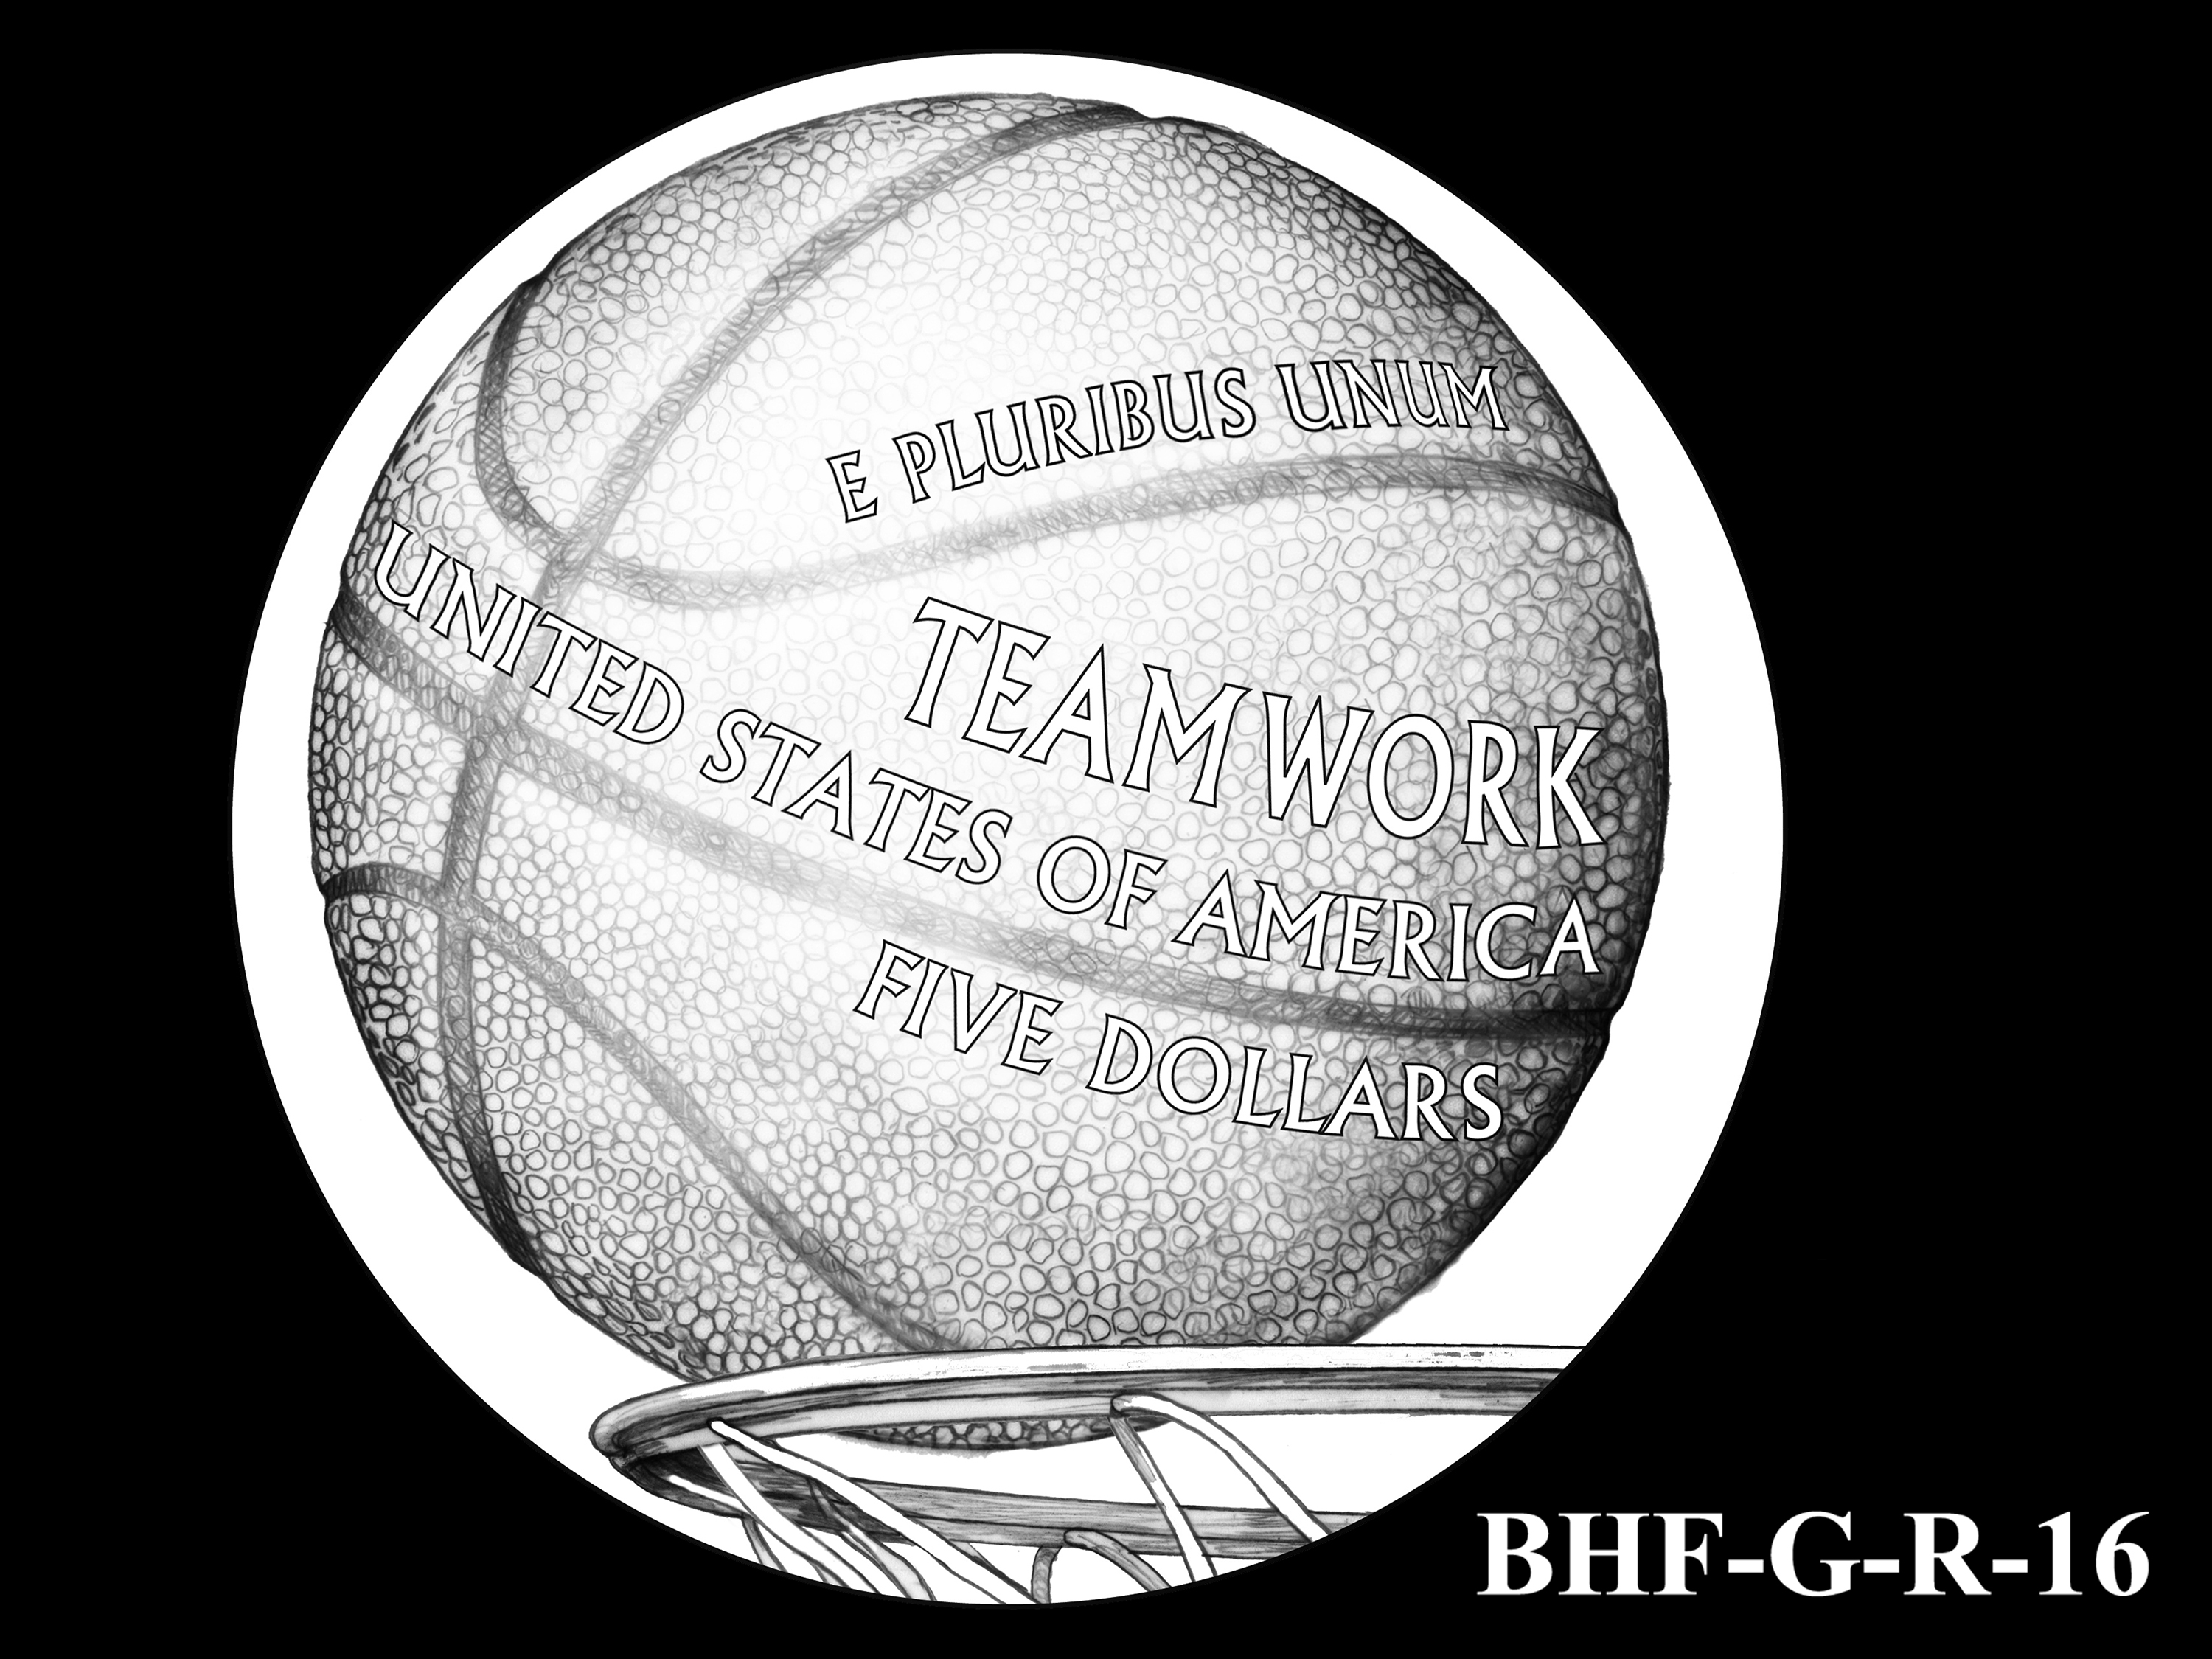 BHF-G-R-16 -- 2020 Basketball Hall of Fame Commemorative Coin Program - Gold Reverse